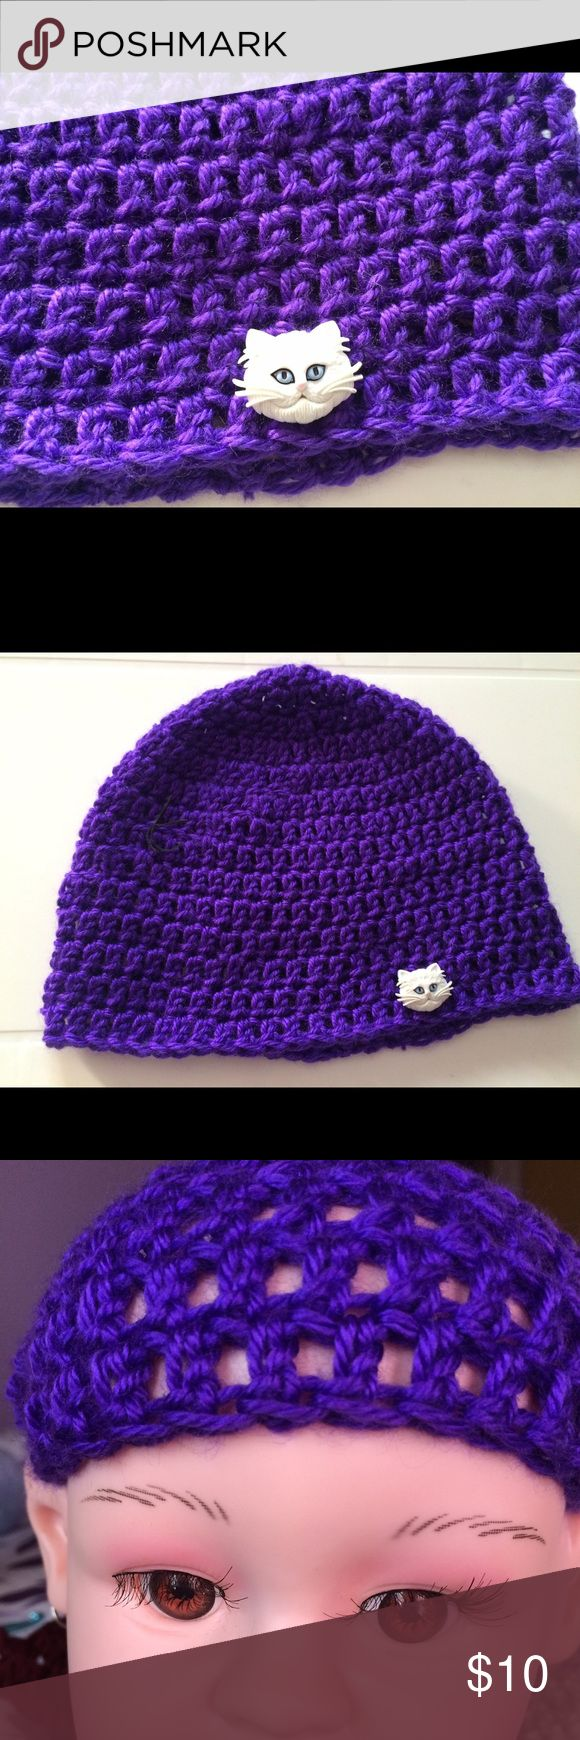 """Crochet Child's beanie, stretchy - * Buttons may vary slightly based on stock. This classic  beanie matches everything. Whether you're looking for a nice neutral hat for everyday wear or your little one likes to show a little attitude.  Newborn baby head circumference, 13″ – 14″, Hat height = 5.5 to 6″ Baby 3 to 6 months, Head Cir, 14″ – 17 """", Hat height= 6.5 – 7″ baby 6-12 months, 16″-19″ head cir., hat length=6.5-7″ toddler-preschooler (12 months-3 yrs), 18″-20″ head cir., hat length=7″…"""